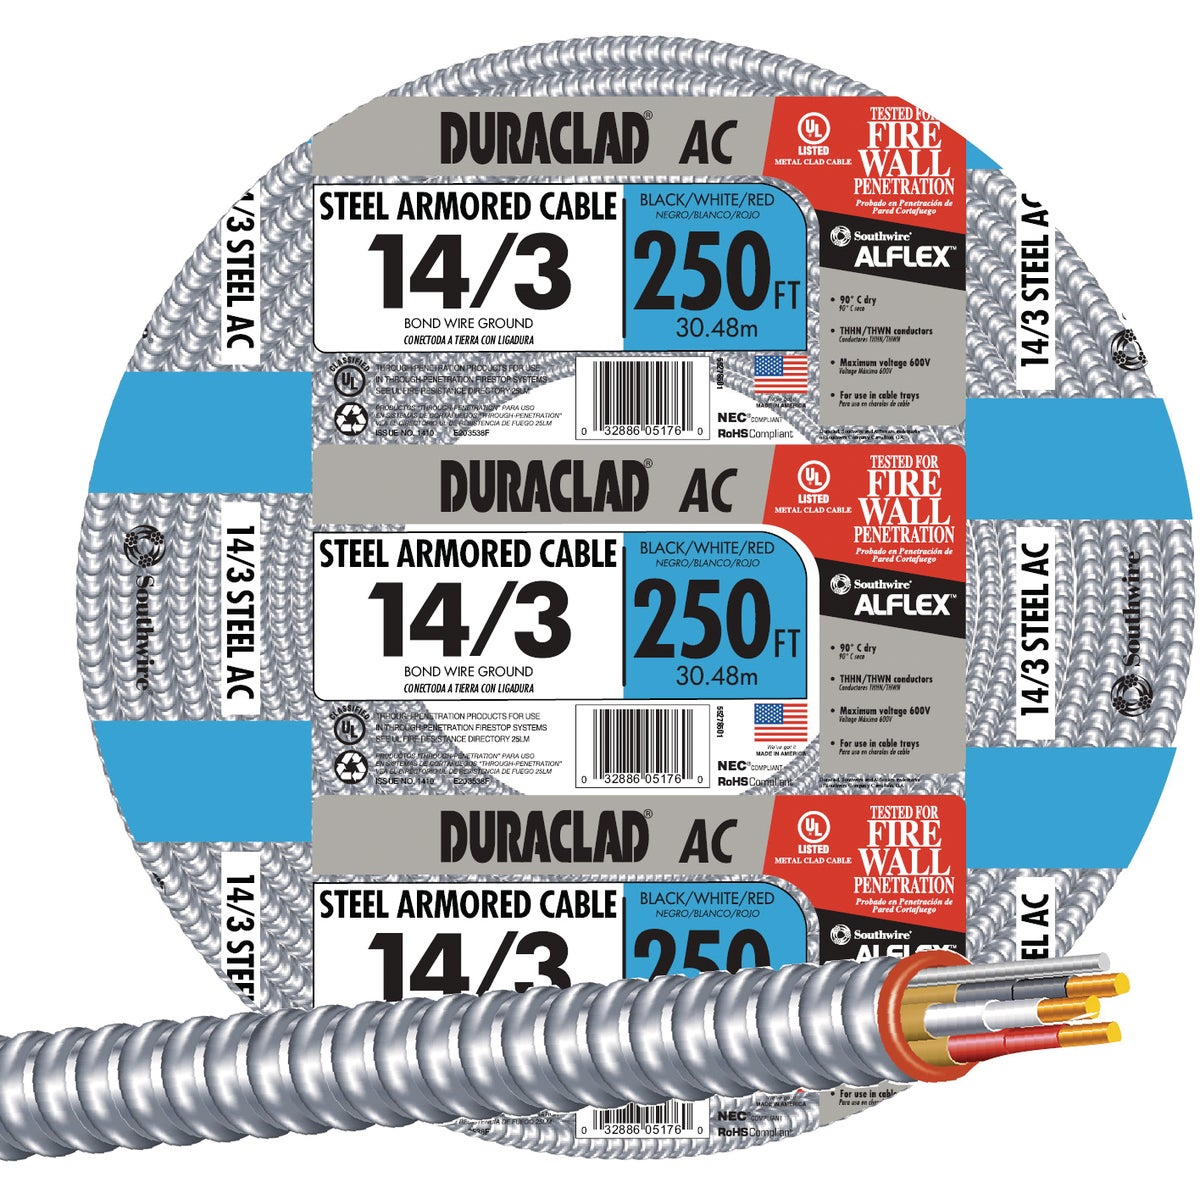 250' 14/3 Stl Armr Cable